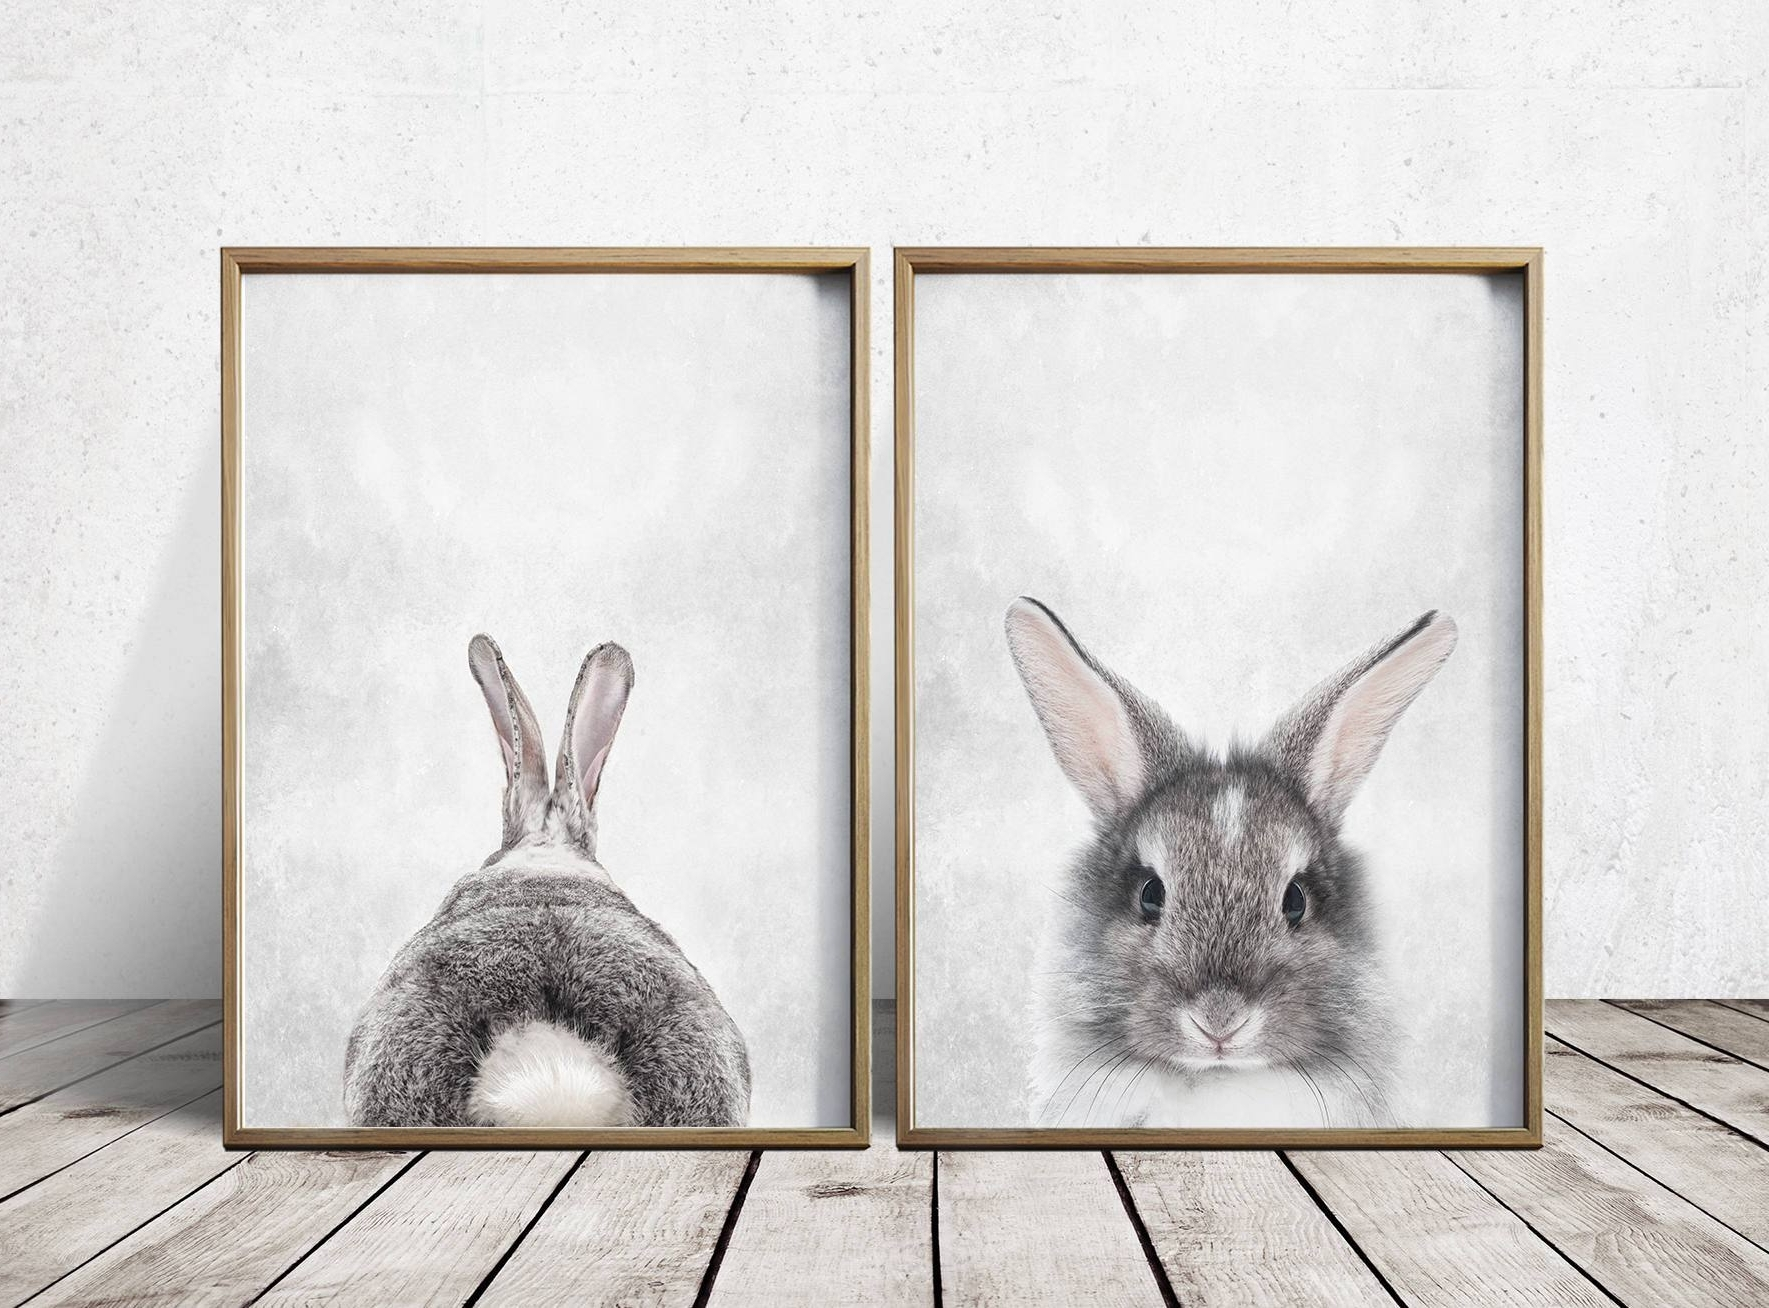 Nursery Wall Art Nursery Decor Gray Rabbit Print Bunny, Vintage Inside Most Up To Date Bunny Wall Art (View 4 of 20)